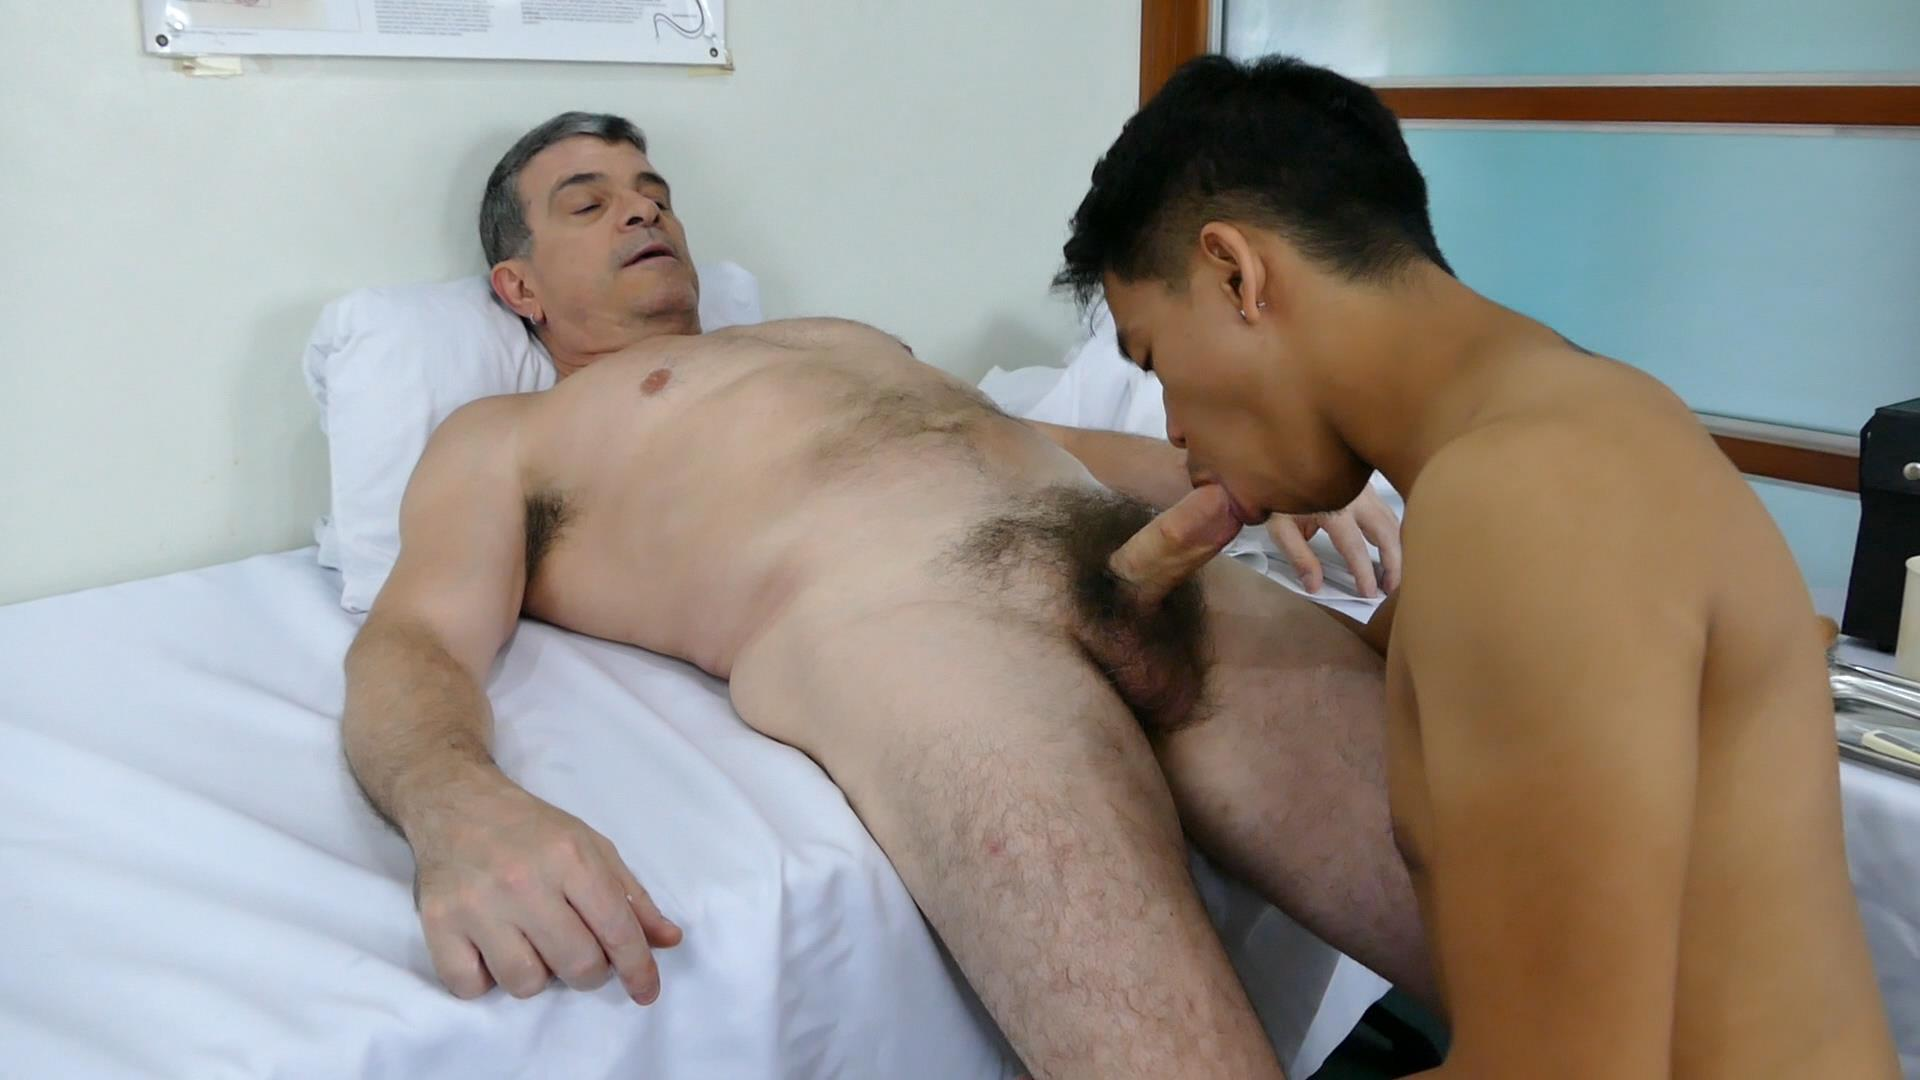 Daddys-Asians-Twink-Gets-Bareback-Fucked-By-Older-Man-16 Horny Asian Boy Takes A Hairy Daddy Dick Raw Up The Ass